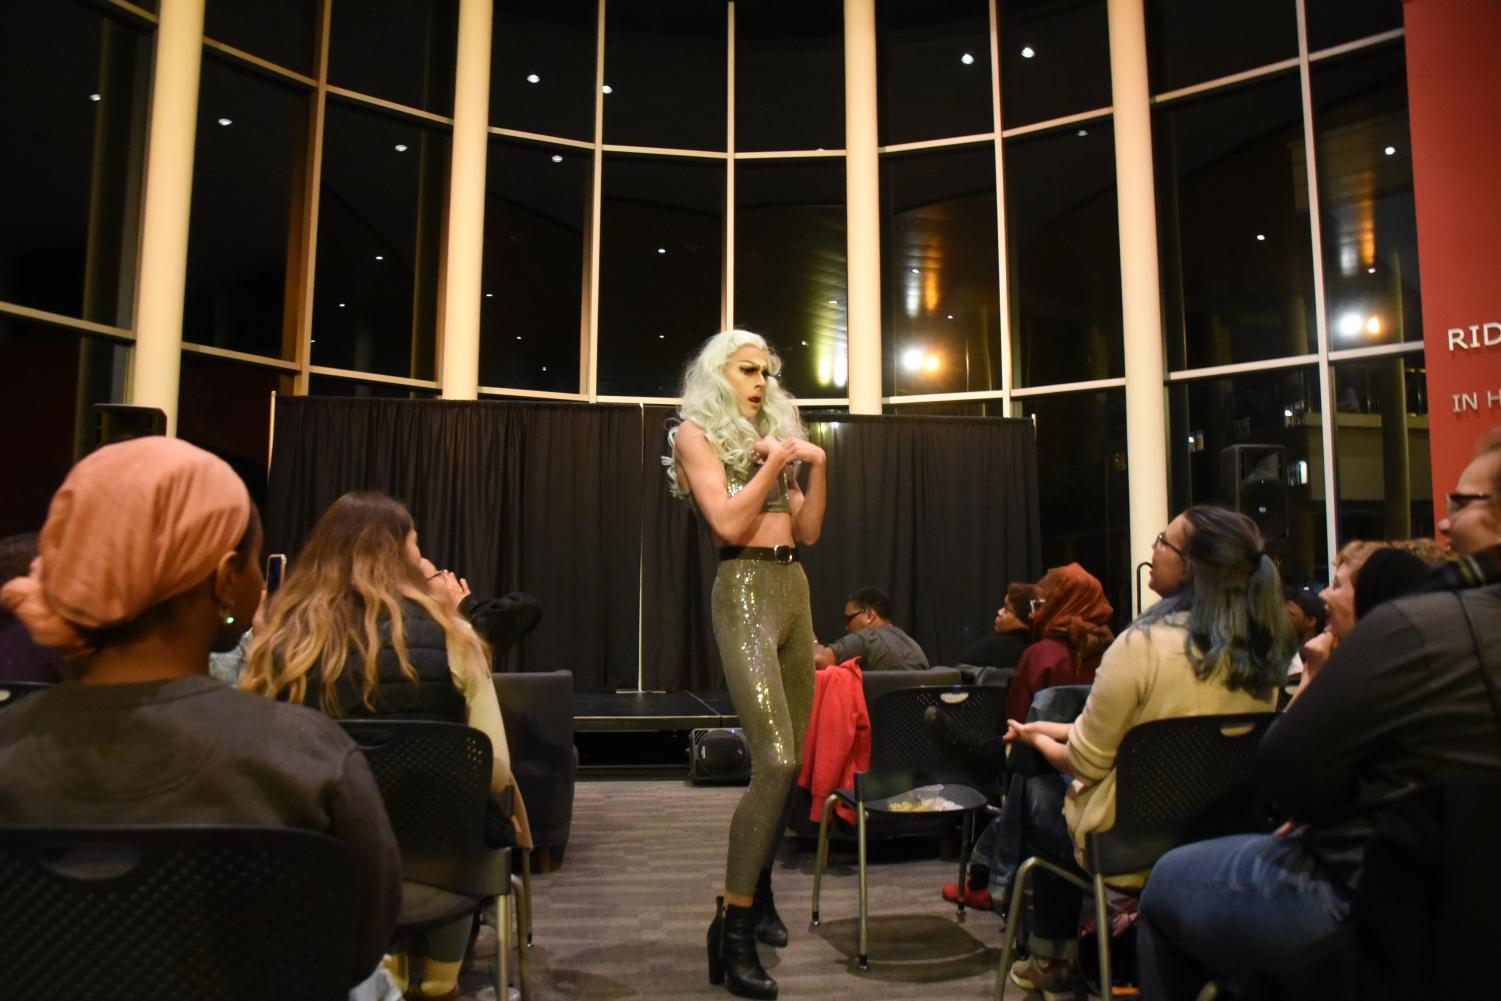 Last year's first-place winner at the Lip Sync battle was Erin Bougie - who will it be this year?Show up and find out!